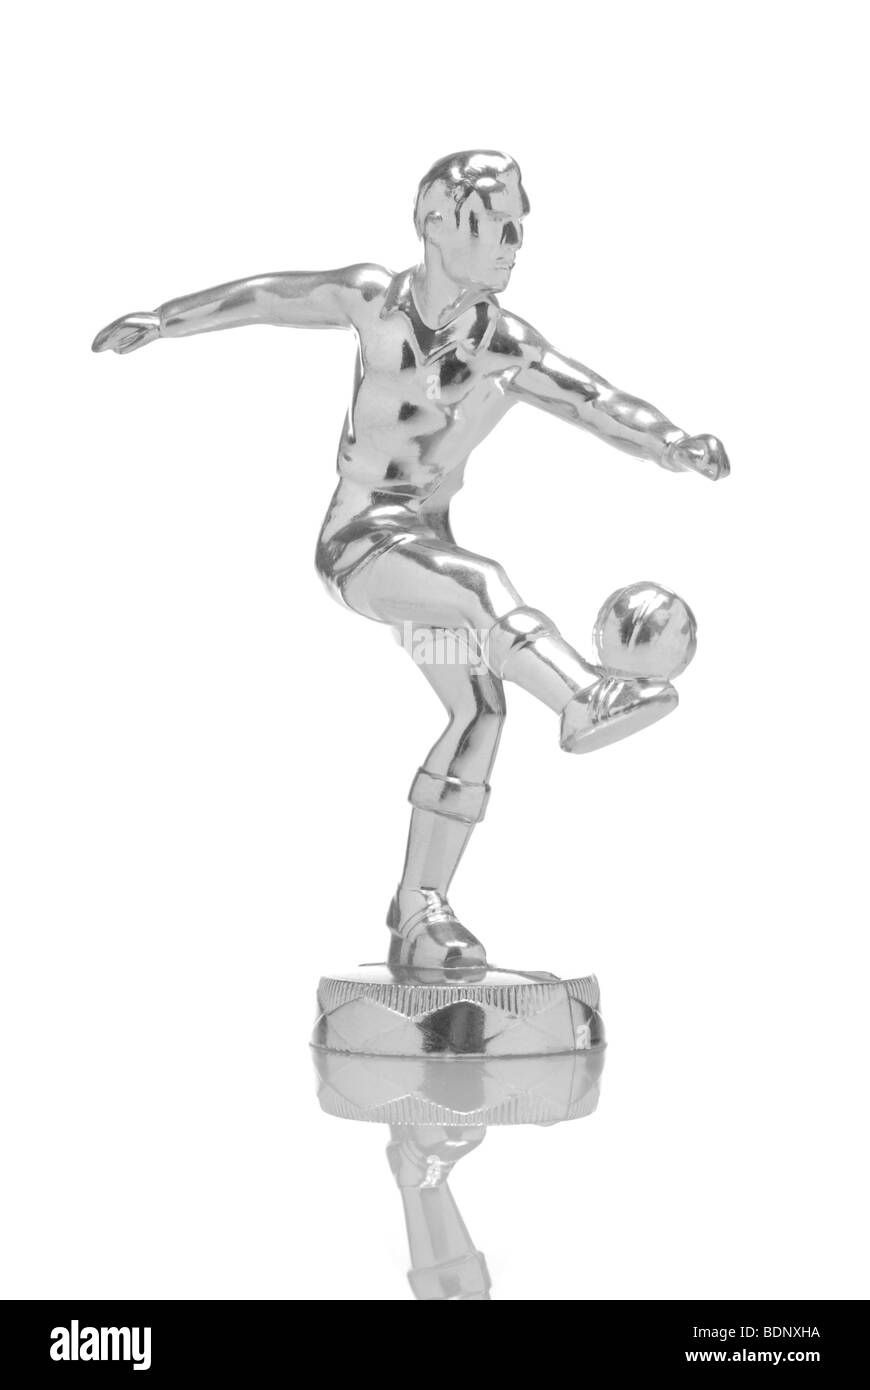 Football player made of chrome - Stock Image